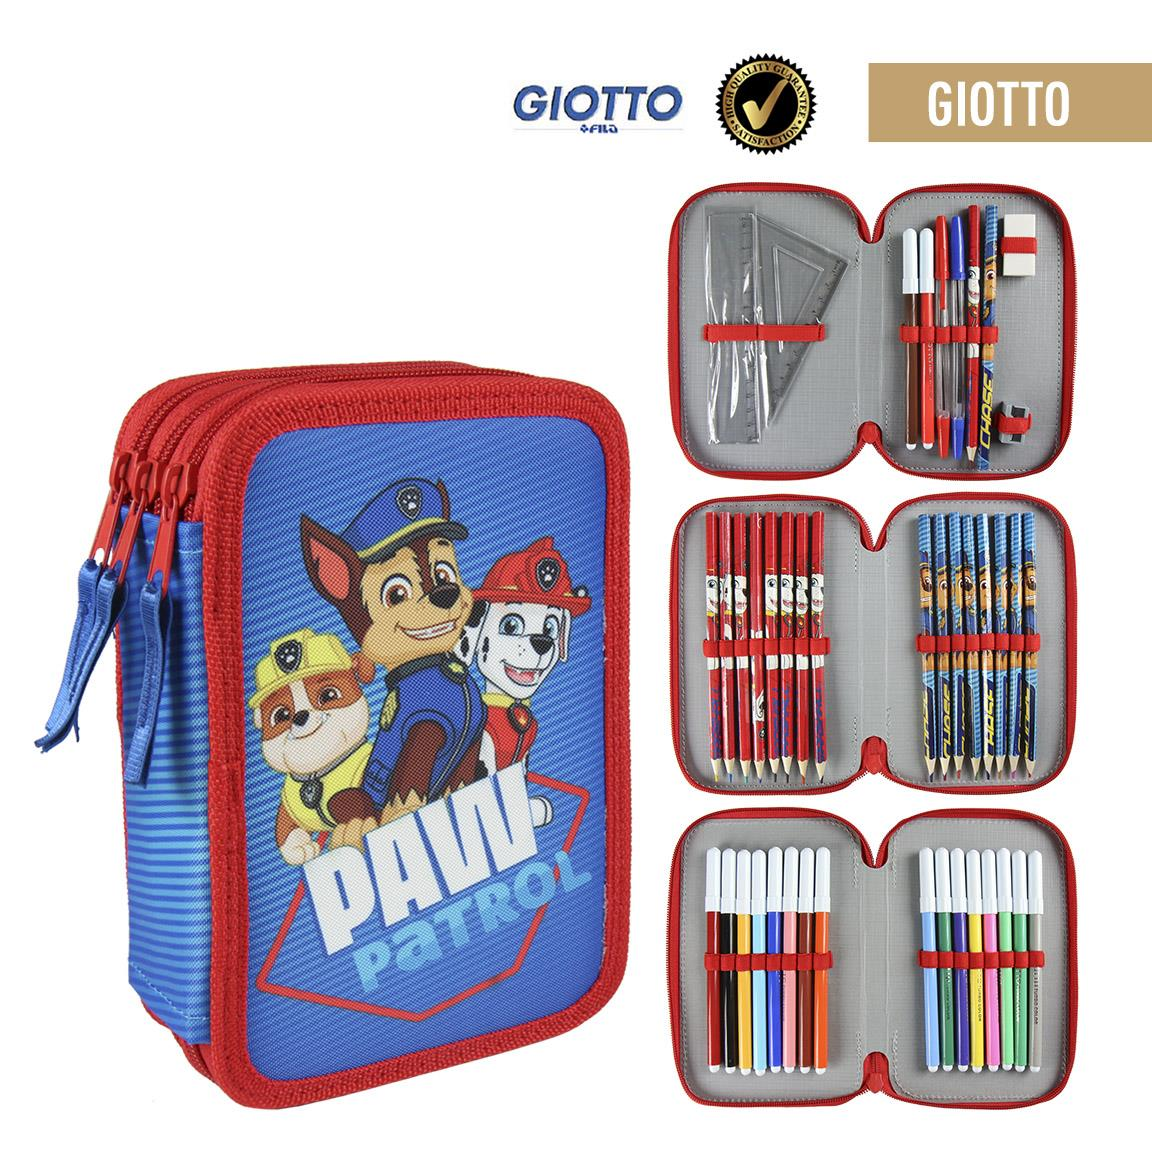 Plumier Threefold Giotto Paw Patrol OFFICIALLY LICENSED ORIGINAL Material Approved EU